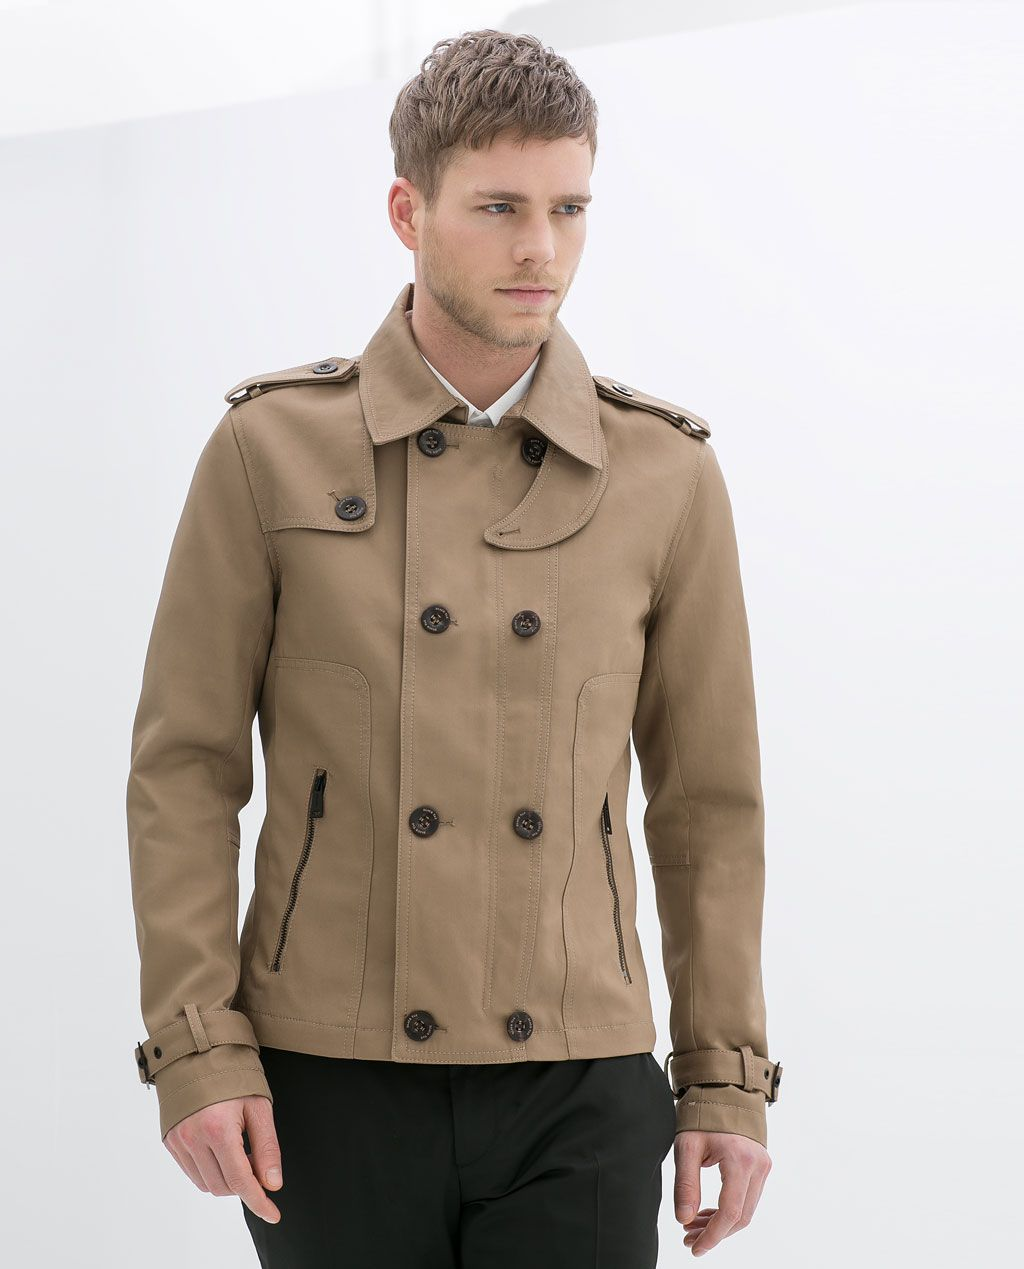 ZARA - MAN - SHORT CROSSOVER TRENCH COAT | Jackets, trench coat ...